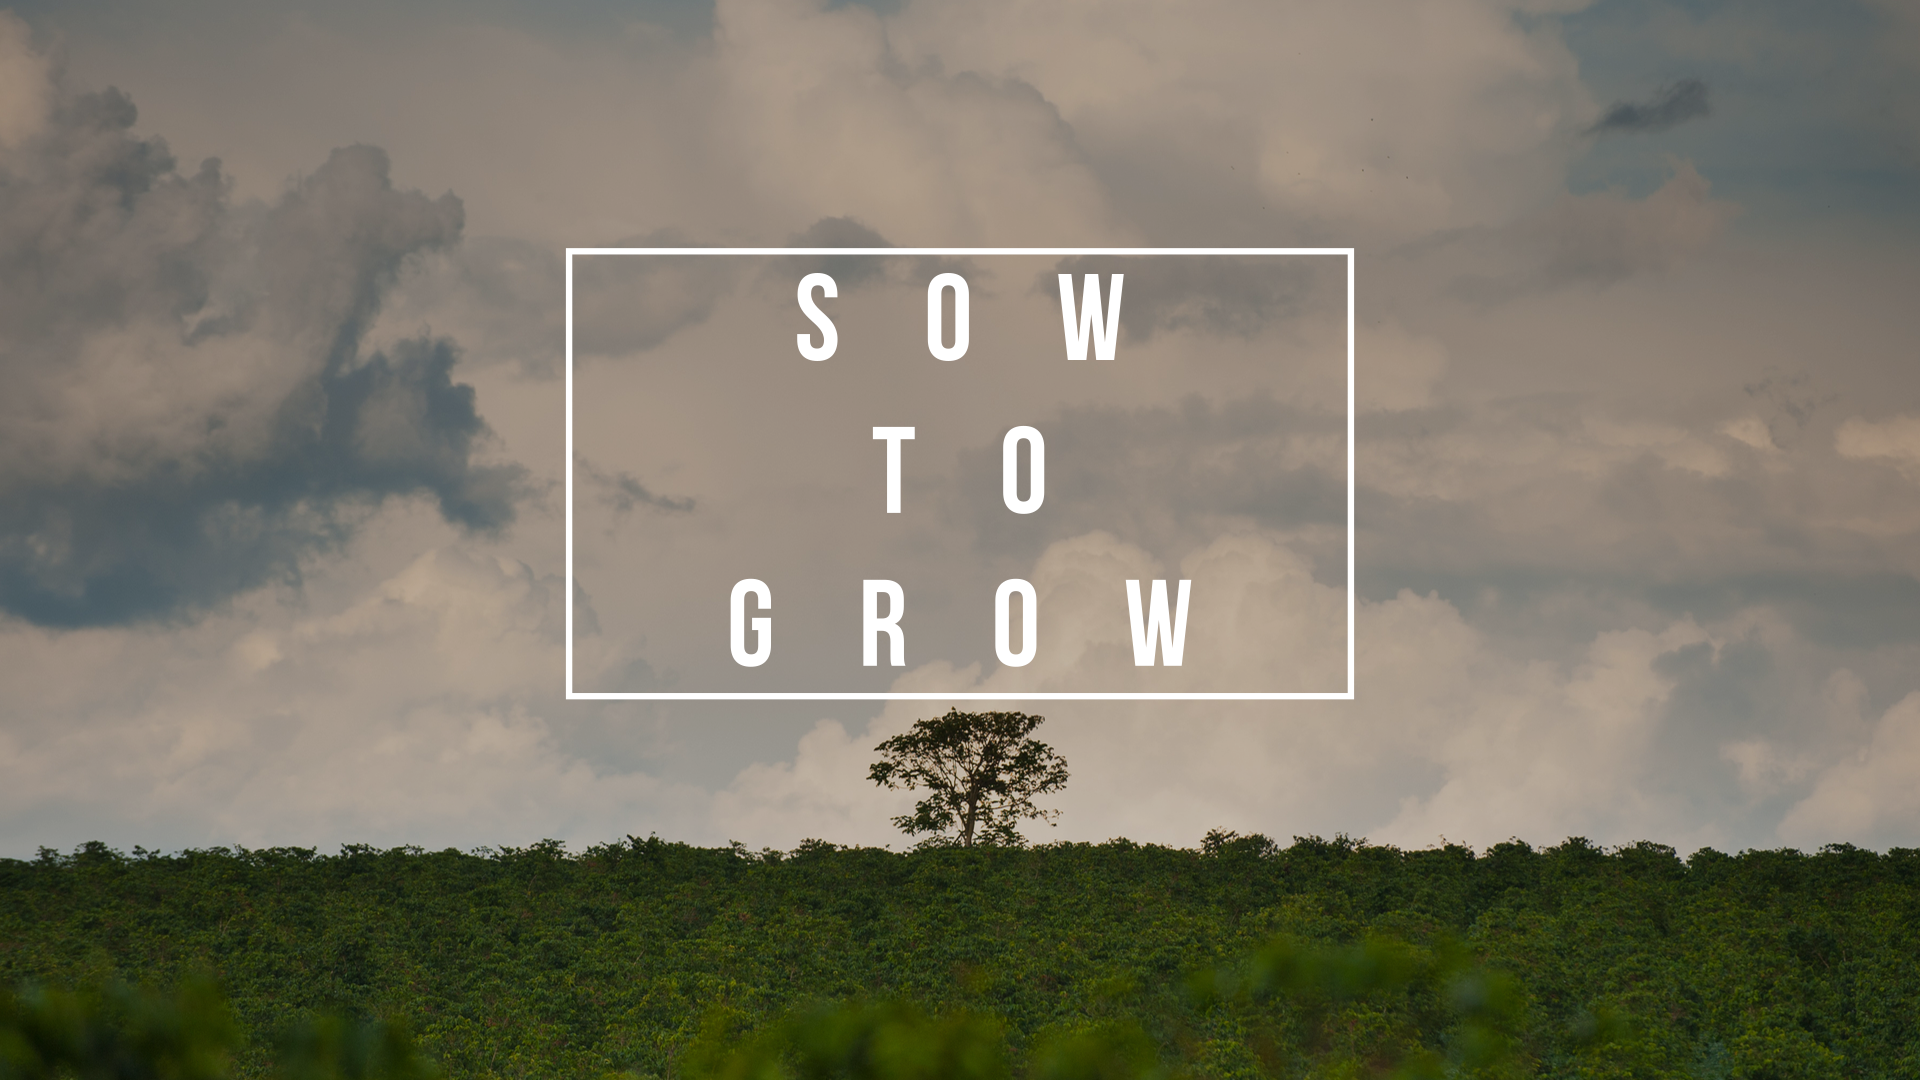 Sow to grow 3